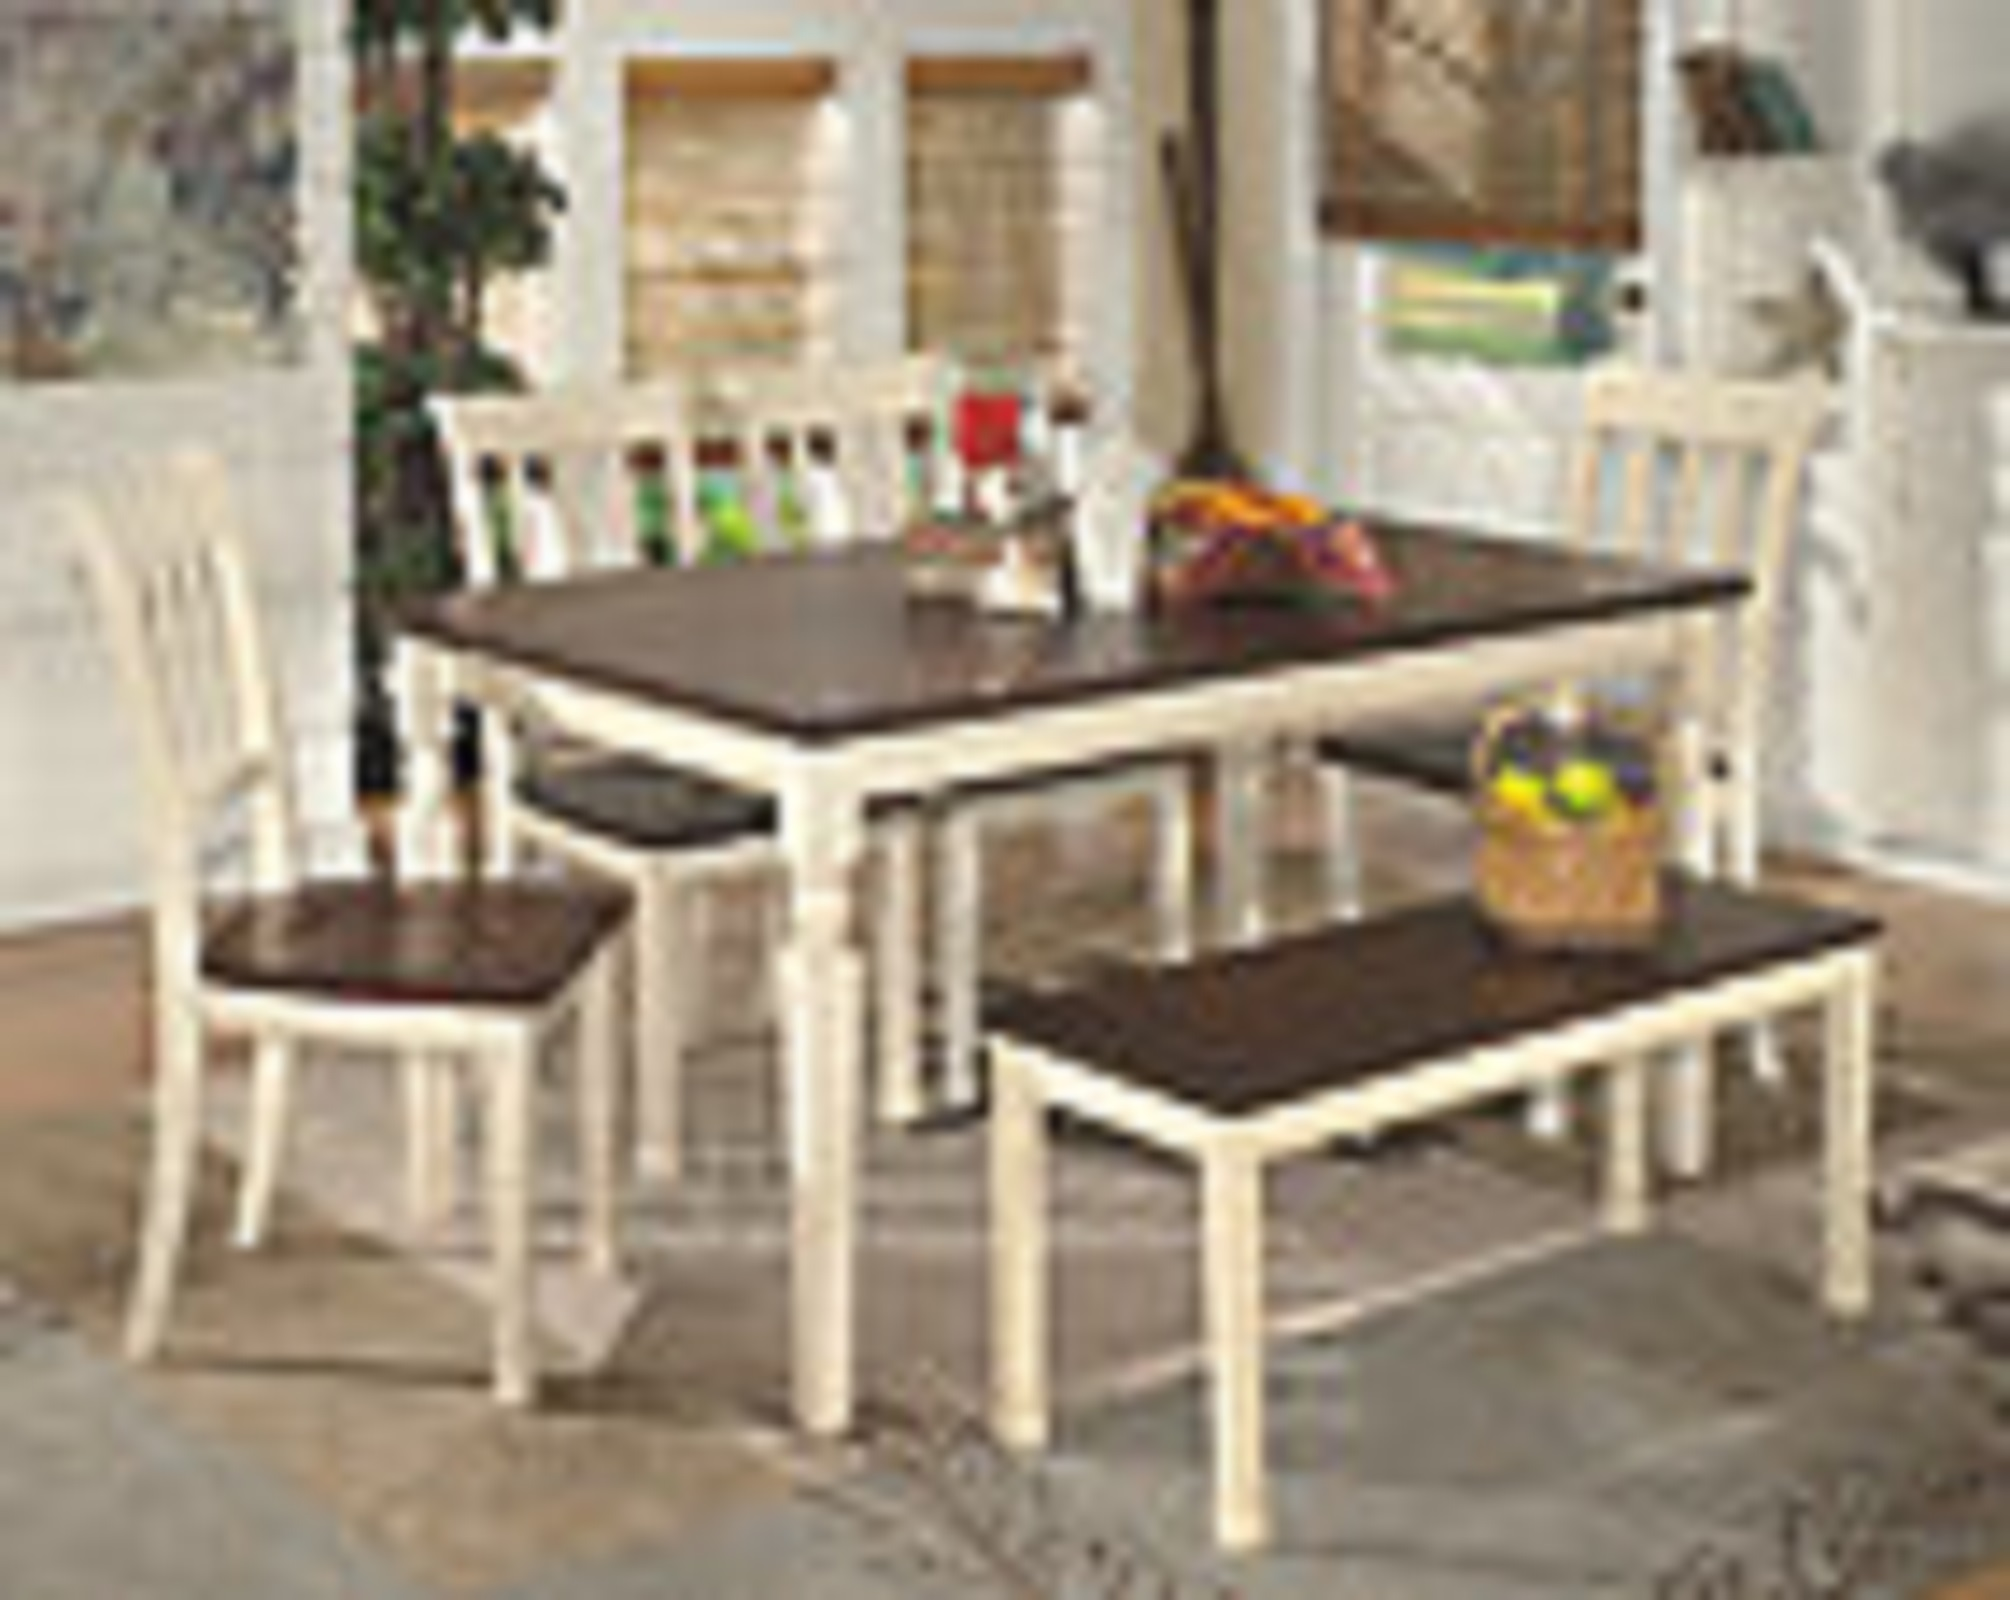 Signature Design by Ashley Whitesburg Rectangular Dining Table with 4 Chairs and Bench